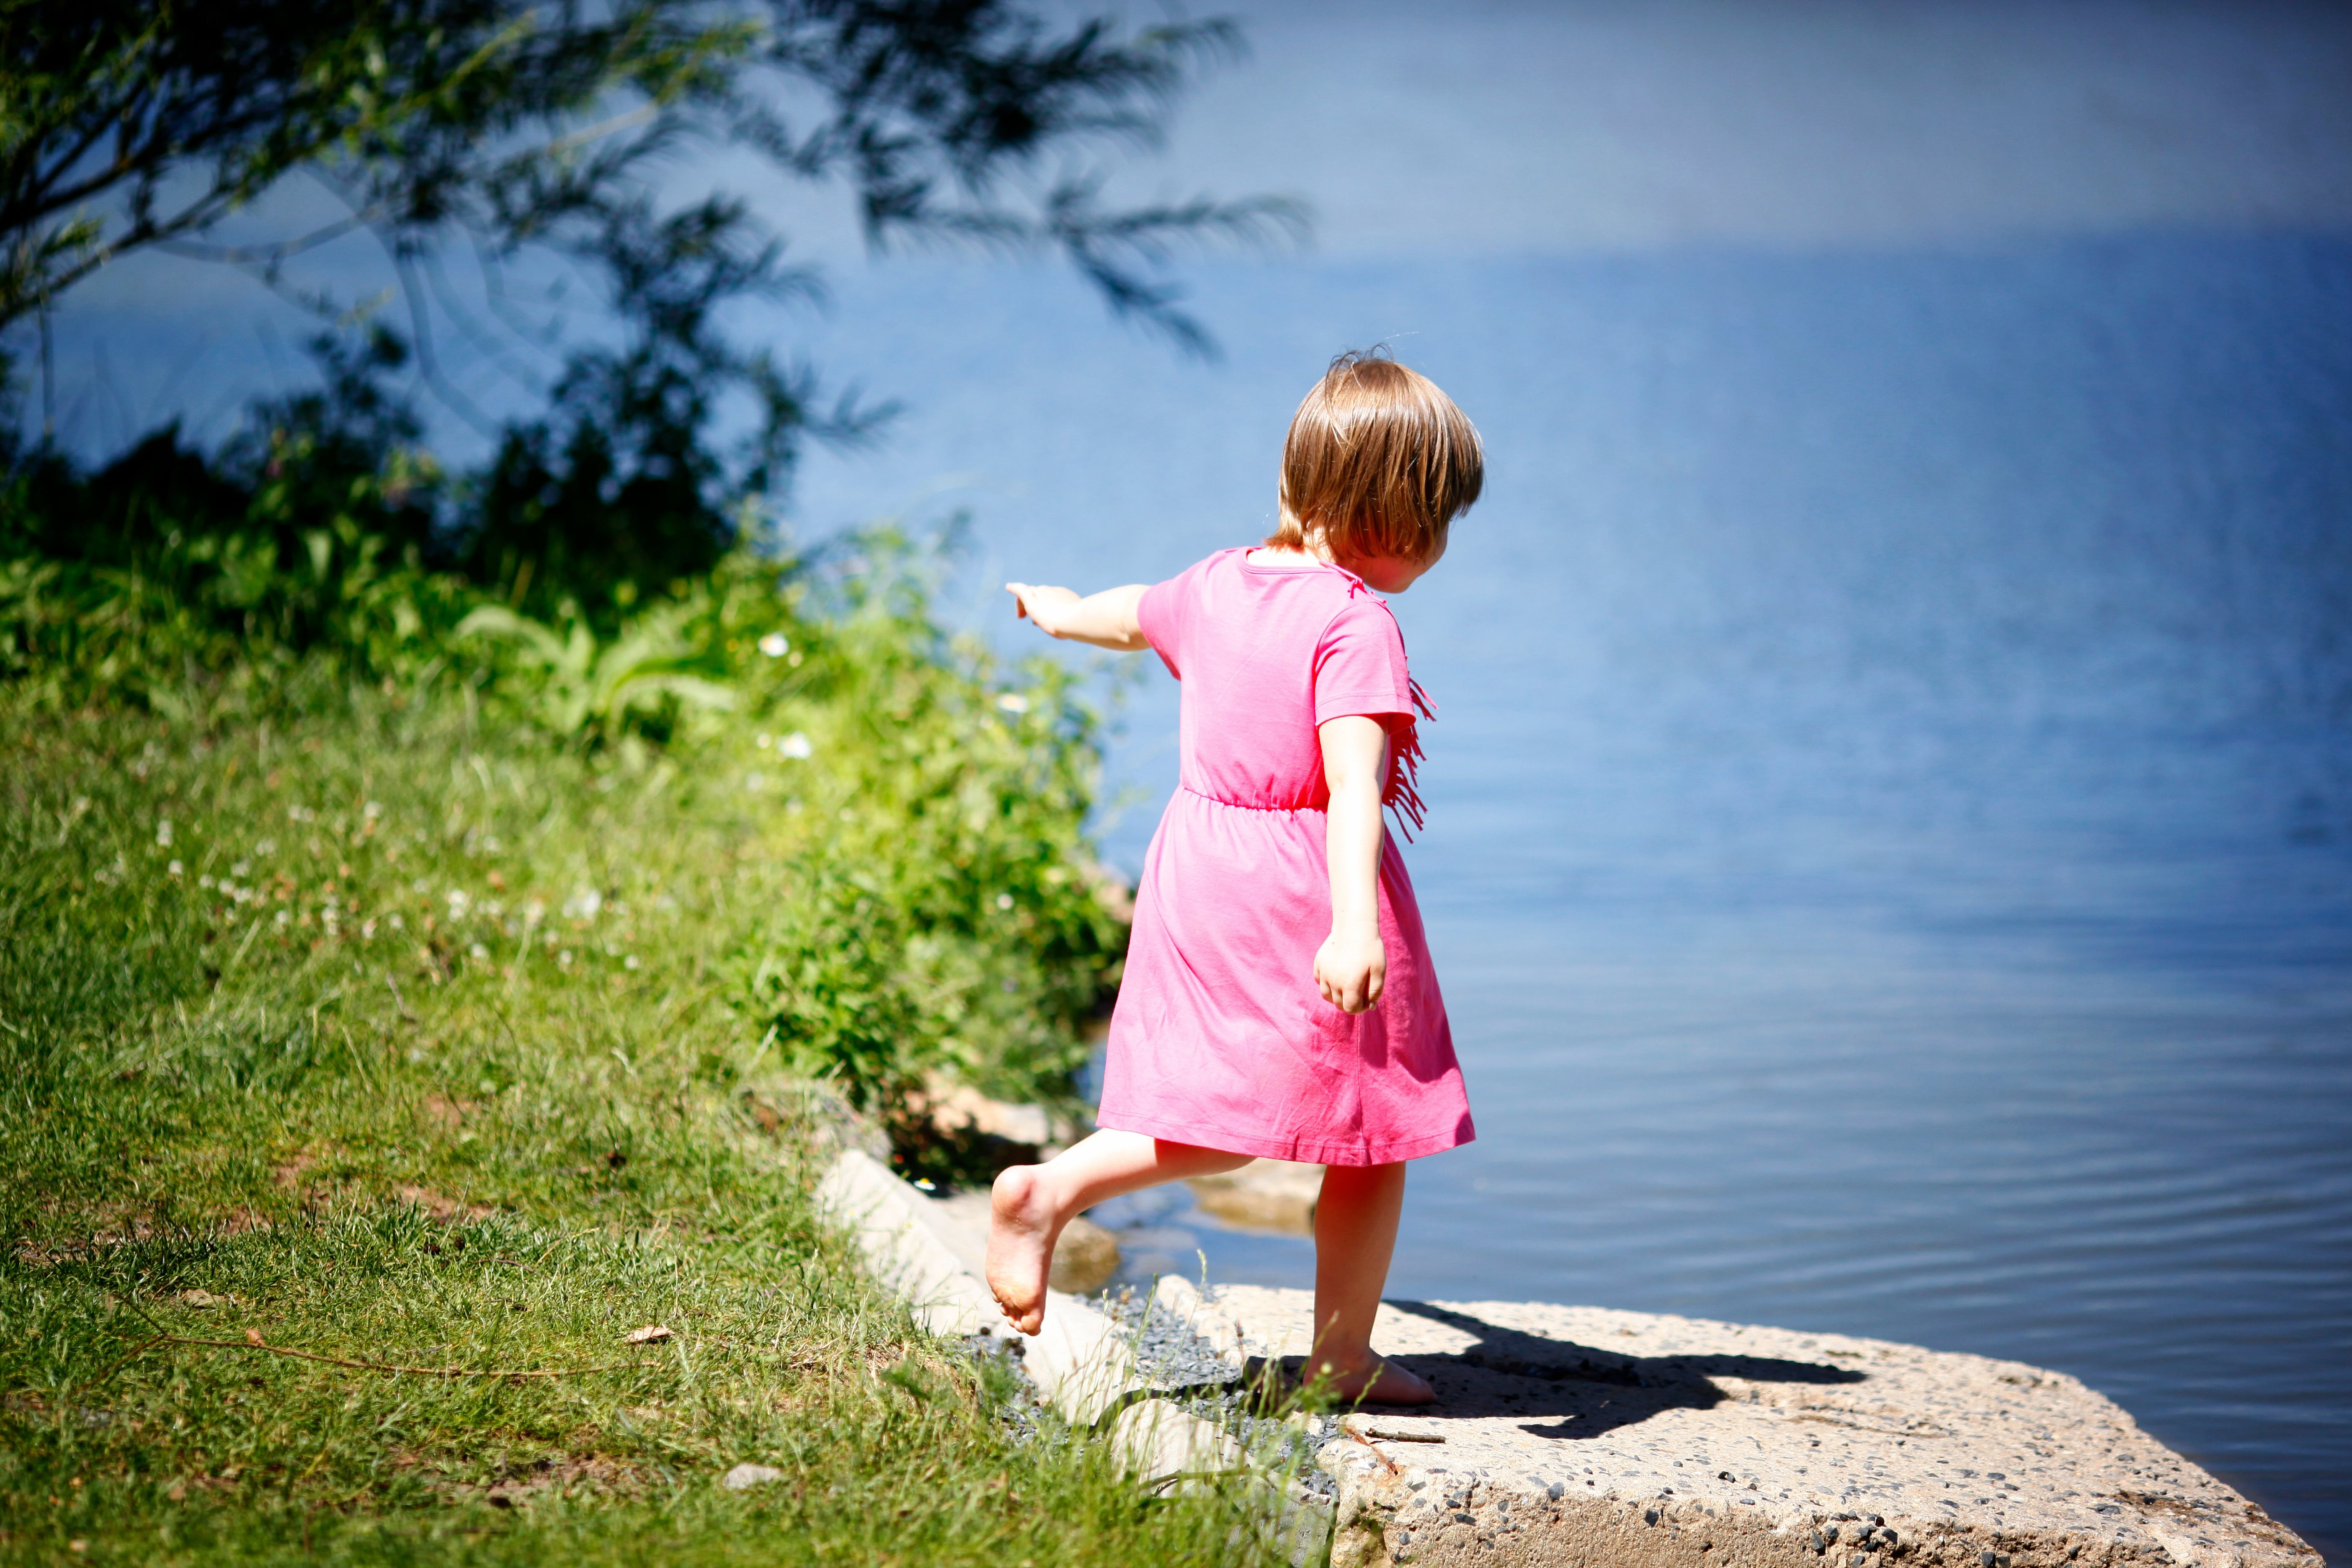 Child Standing Near Body of Water